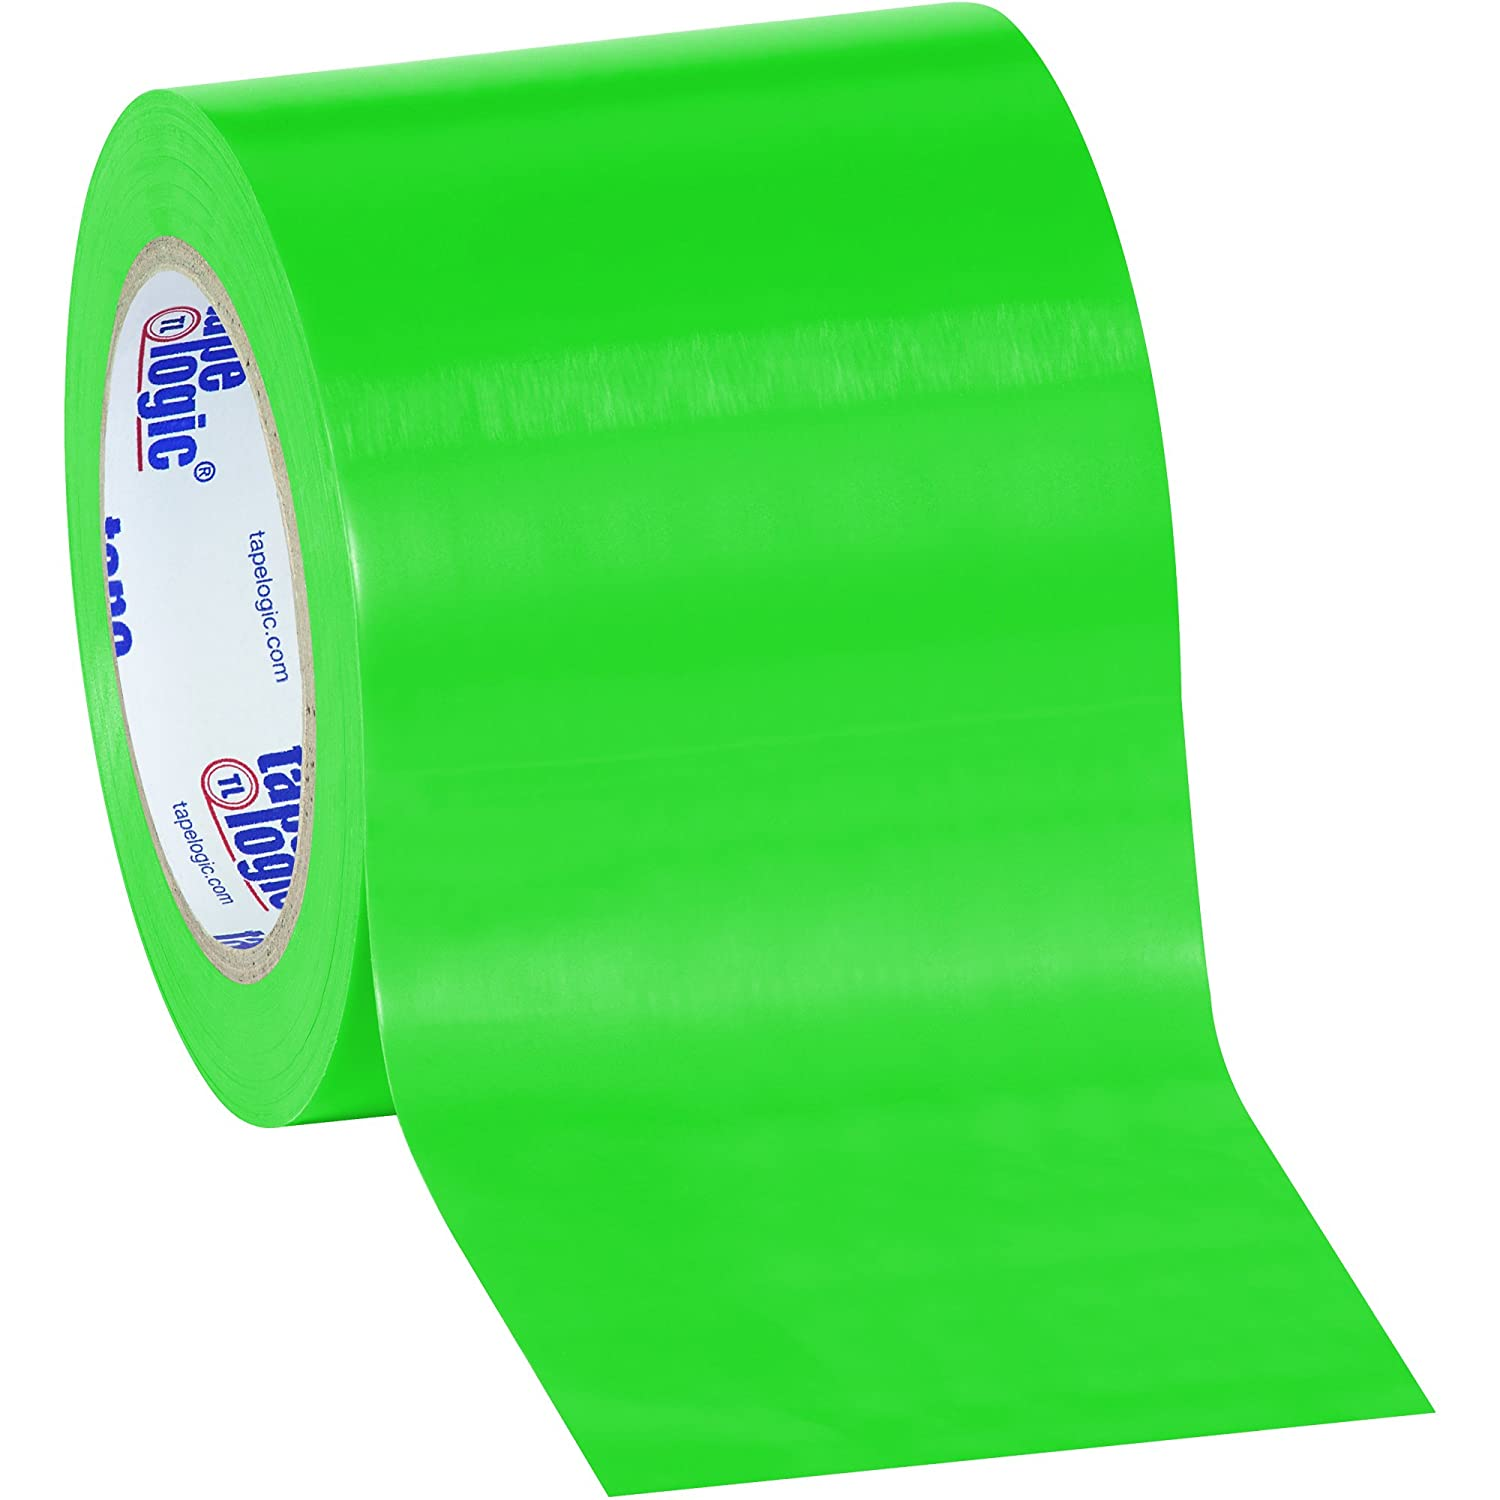 Aviditi T9136G Heavy Duty Solid Vinyl Safety Tape, 36 yds Length x 1 Width, 6 mil Thick, Green (Case of 48) by Aviditi B00DY9TR8A